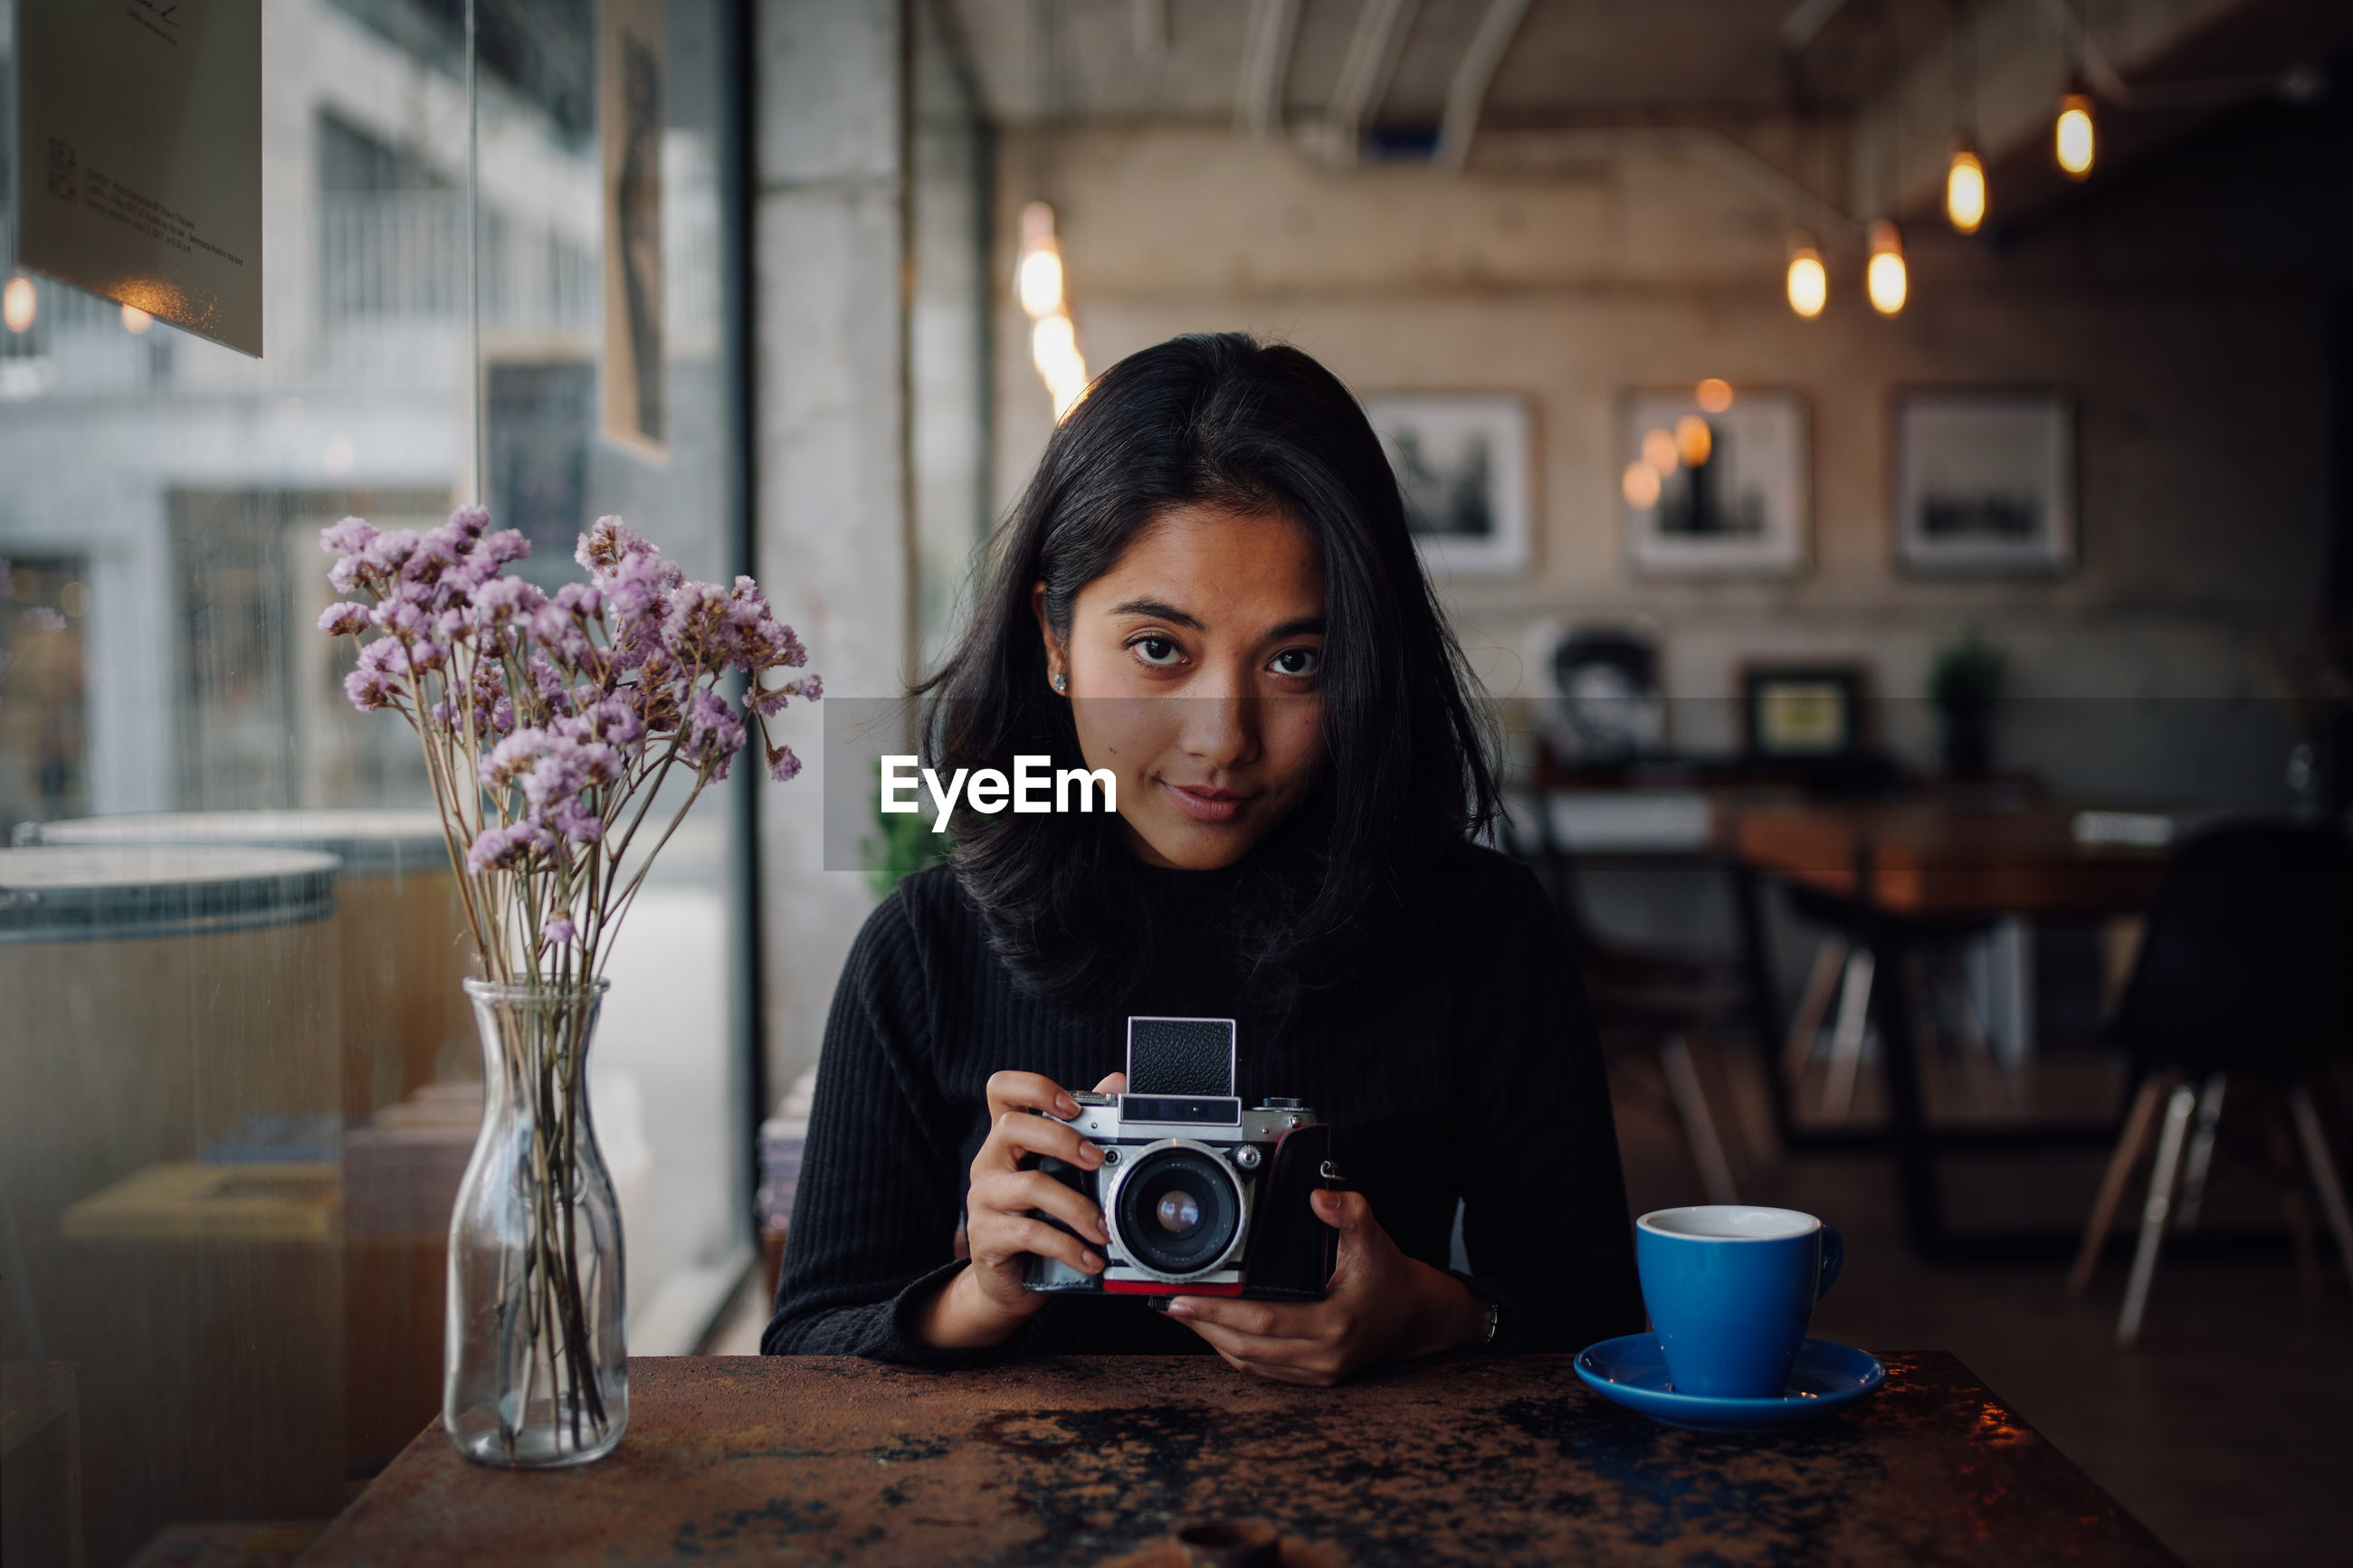 Portrait of woman photographing with camera at table in cafe